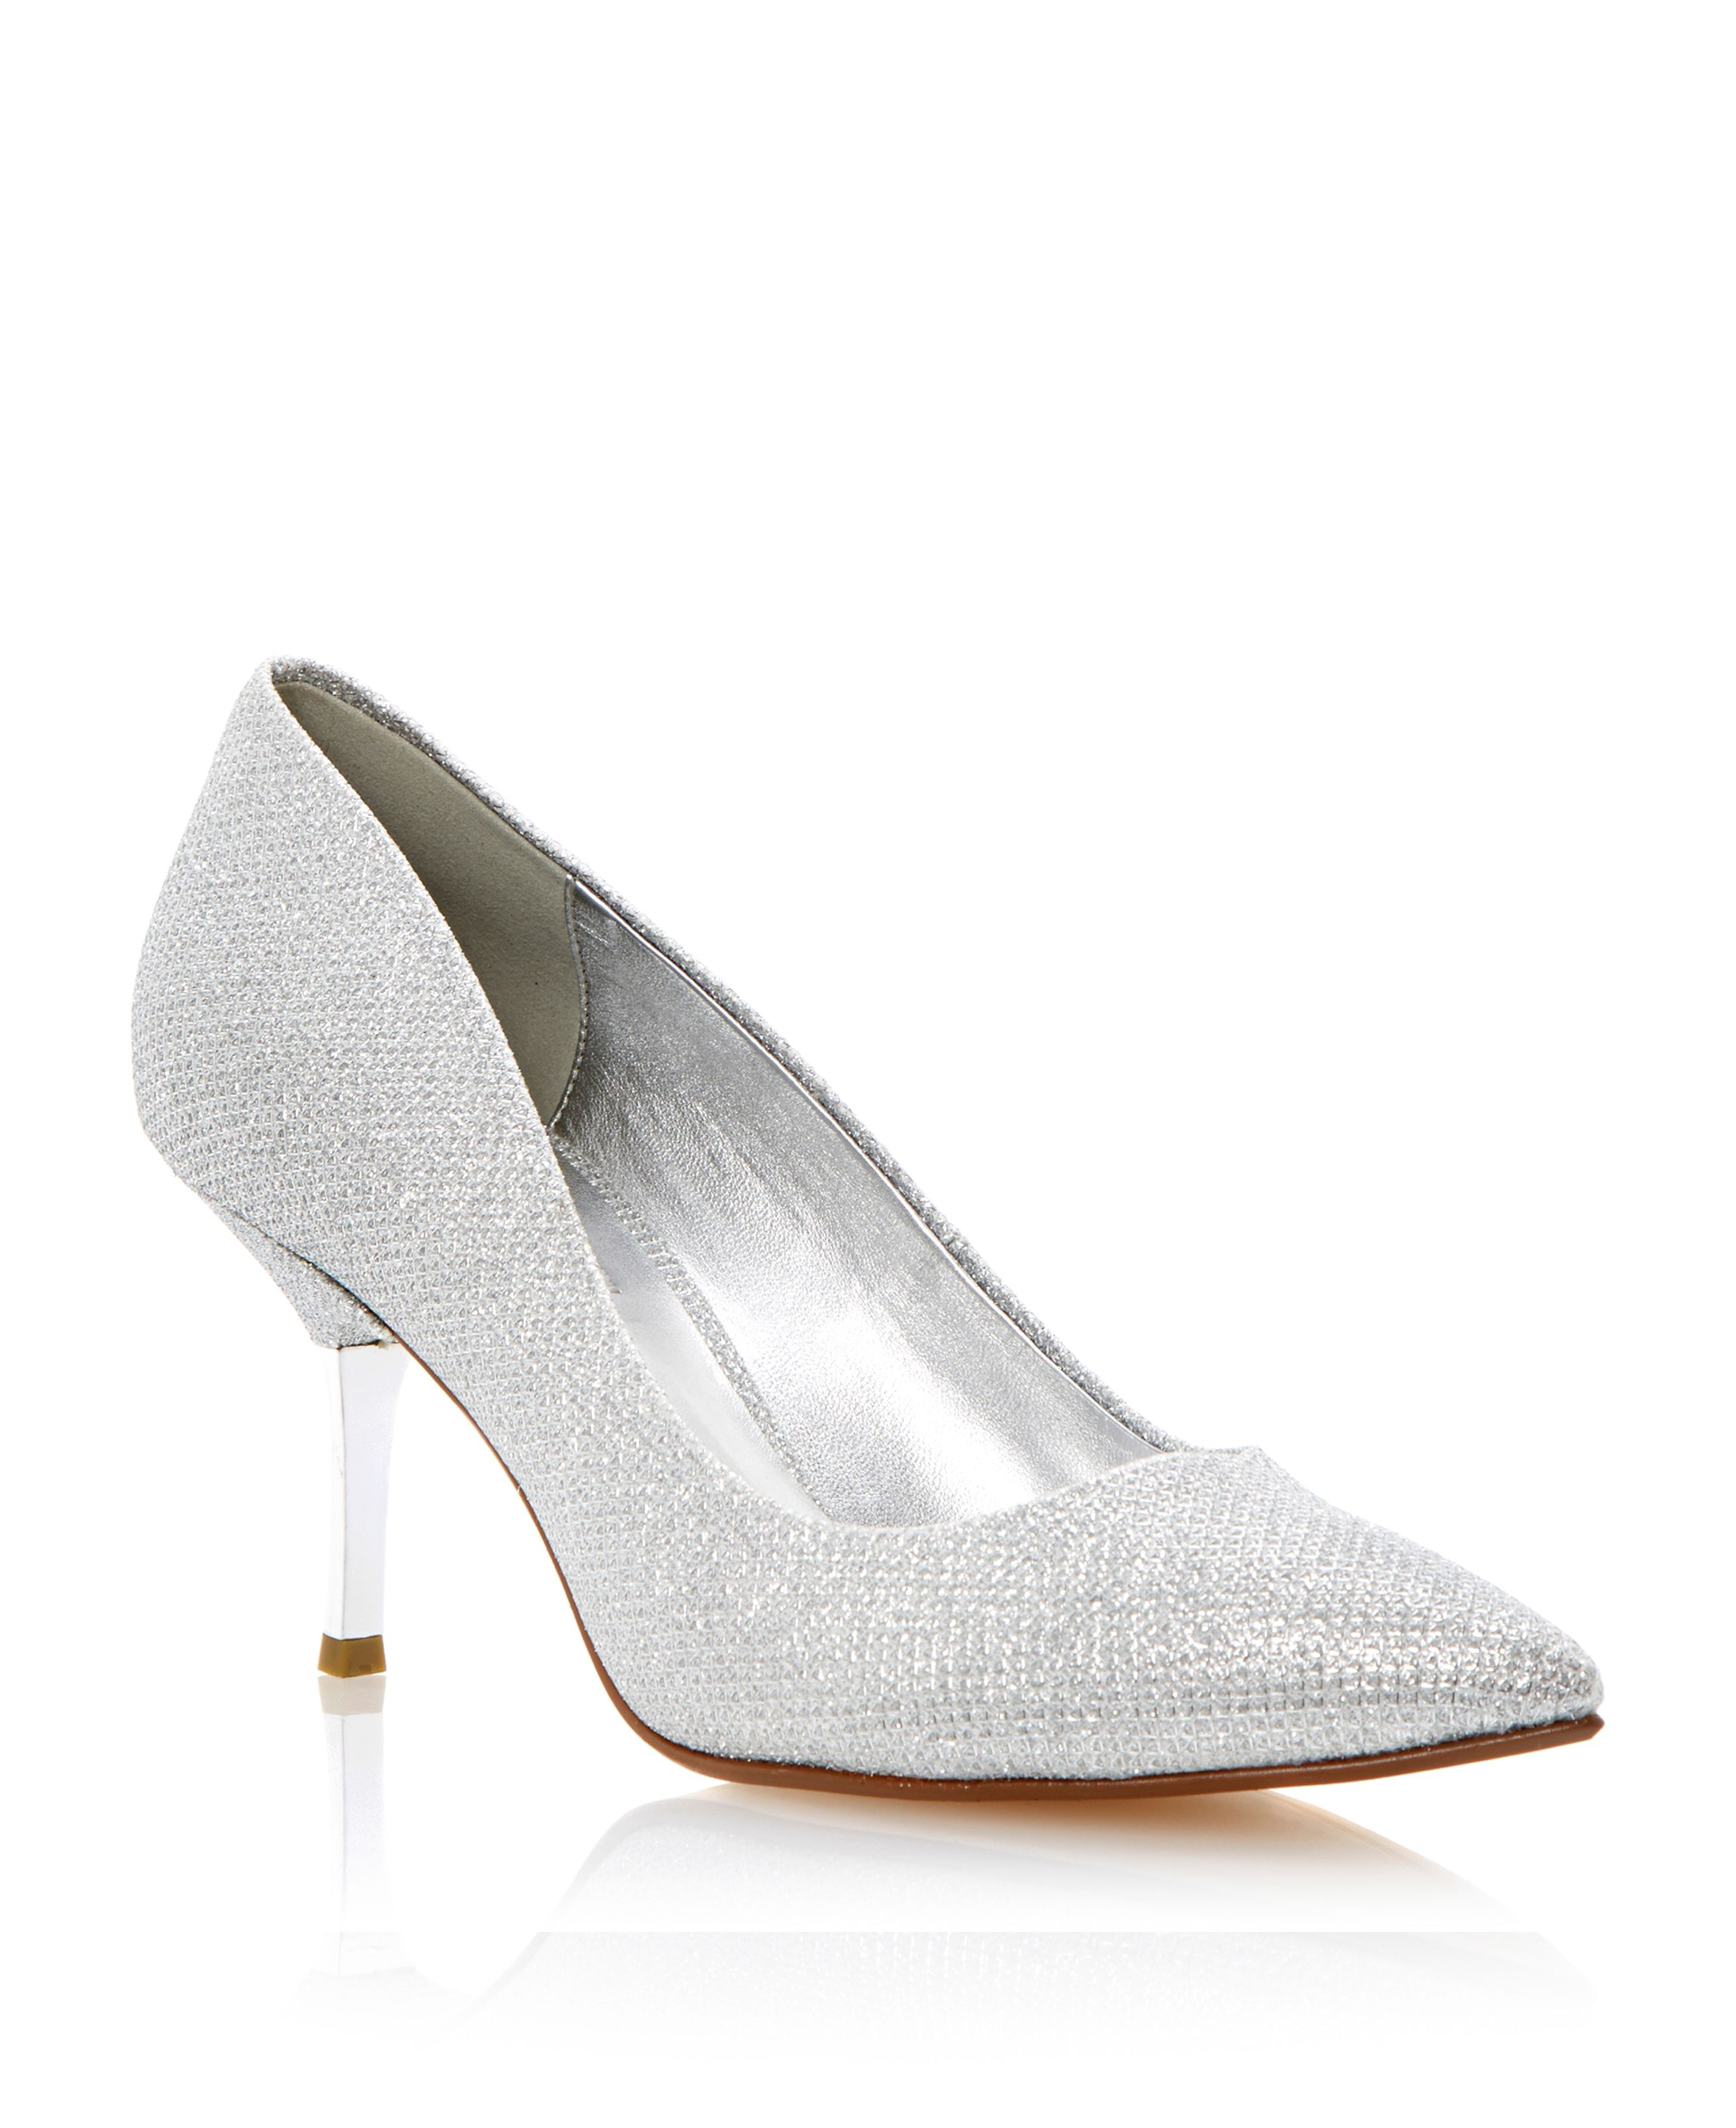 Brill kitten heel occasion court shoes